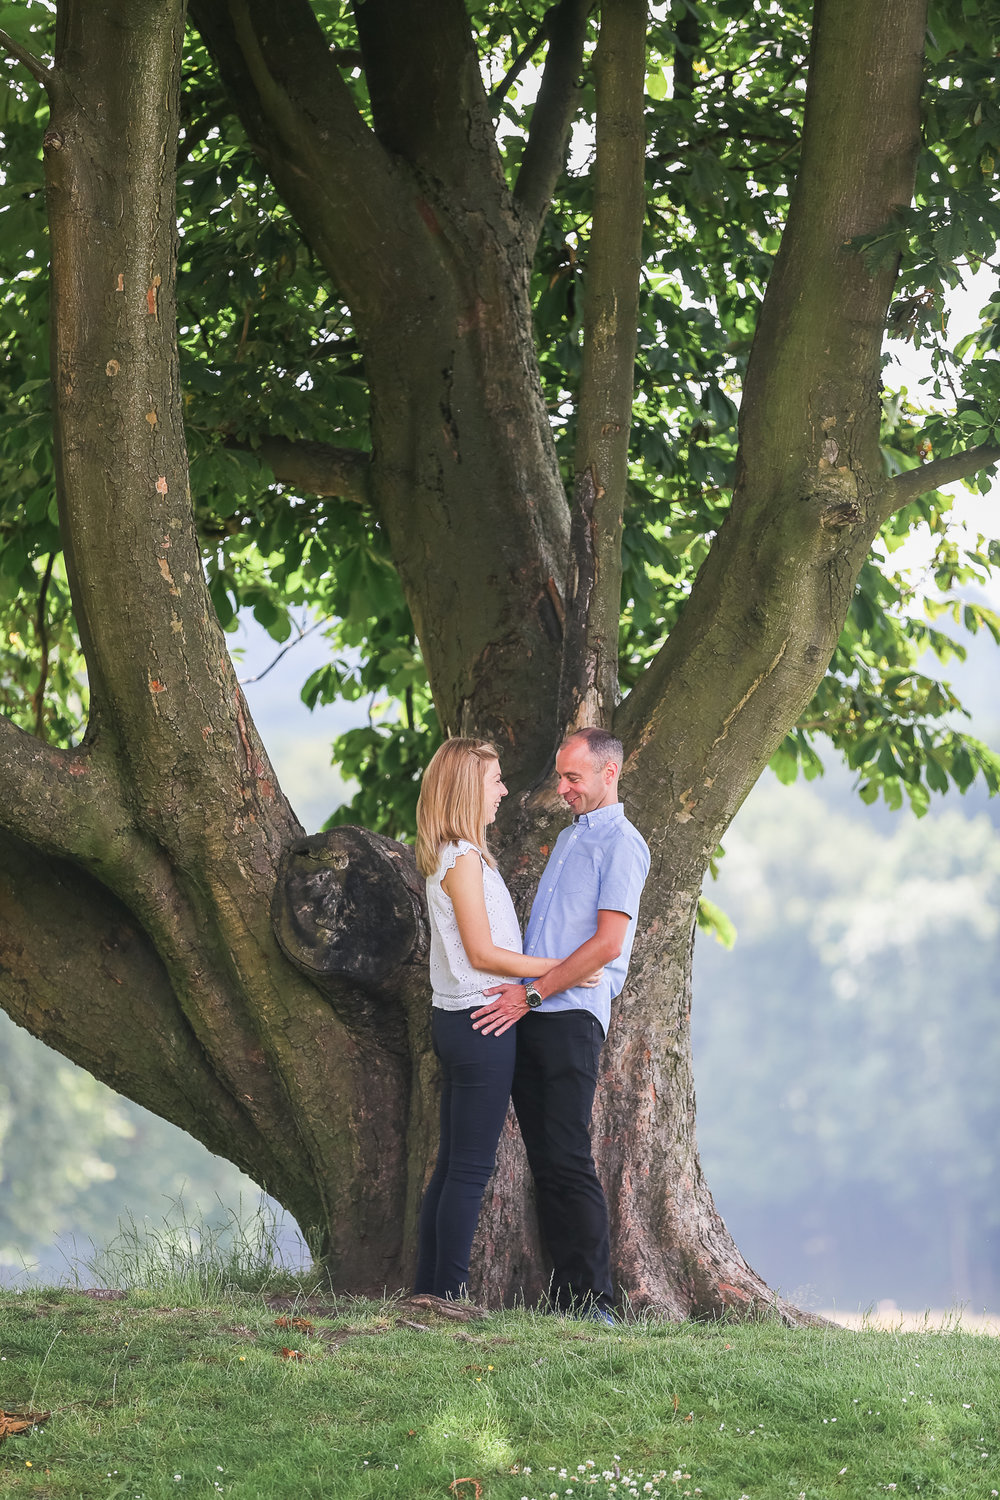 0022-Claire & Tony - engagement-Heaton Moor Park-Manchester-photo.jpg